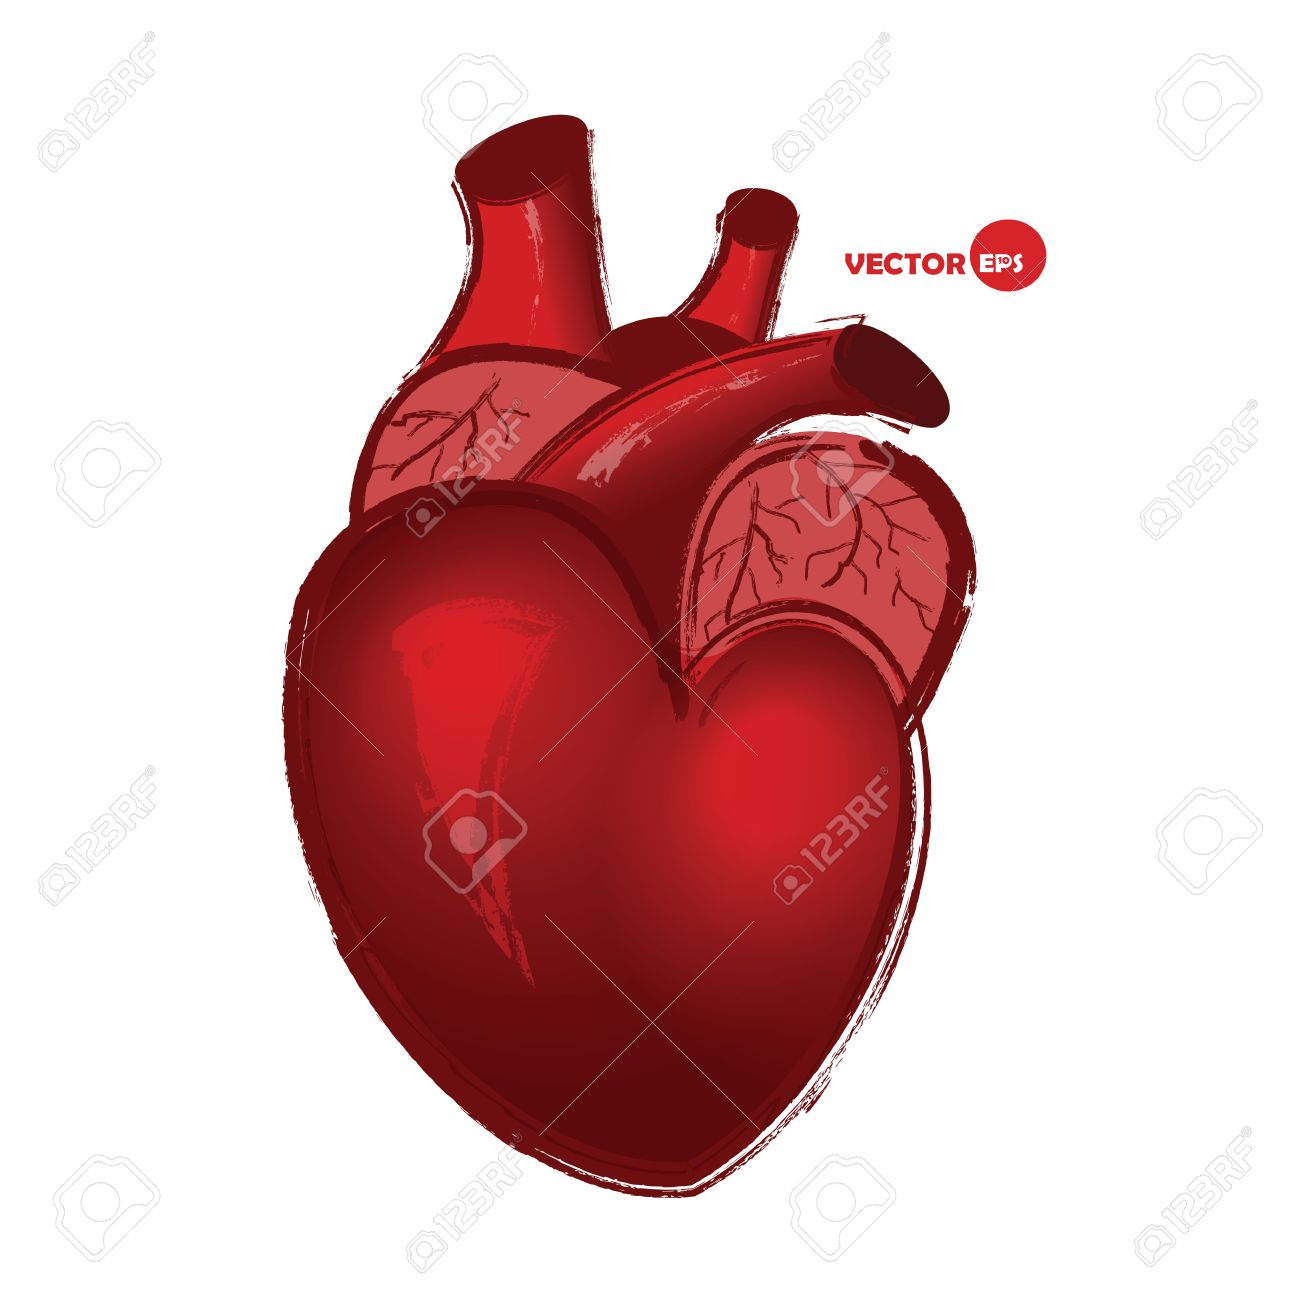 1300x1300 Anatomical Human Heart On White Background, Drawing In Cartoon